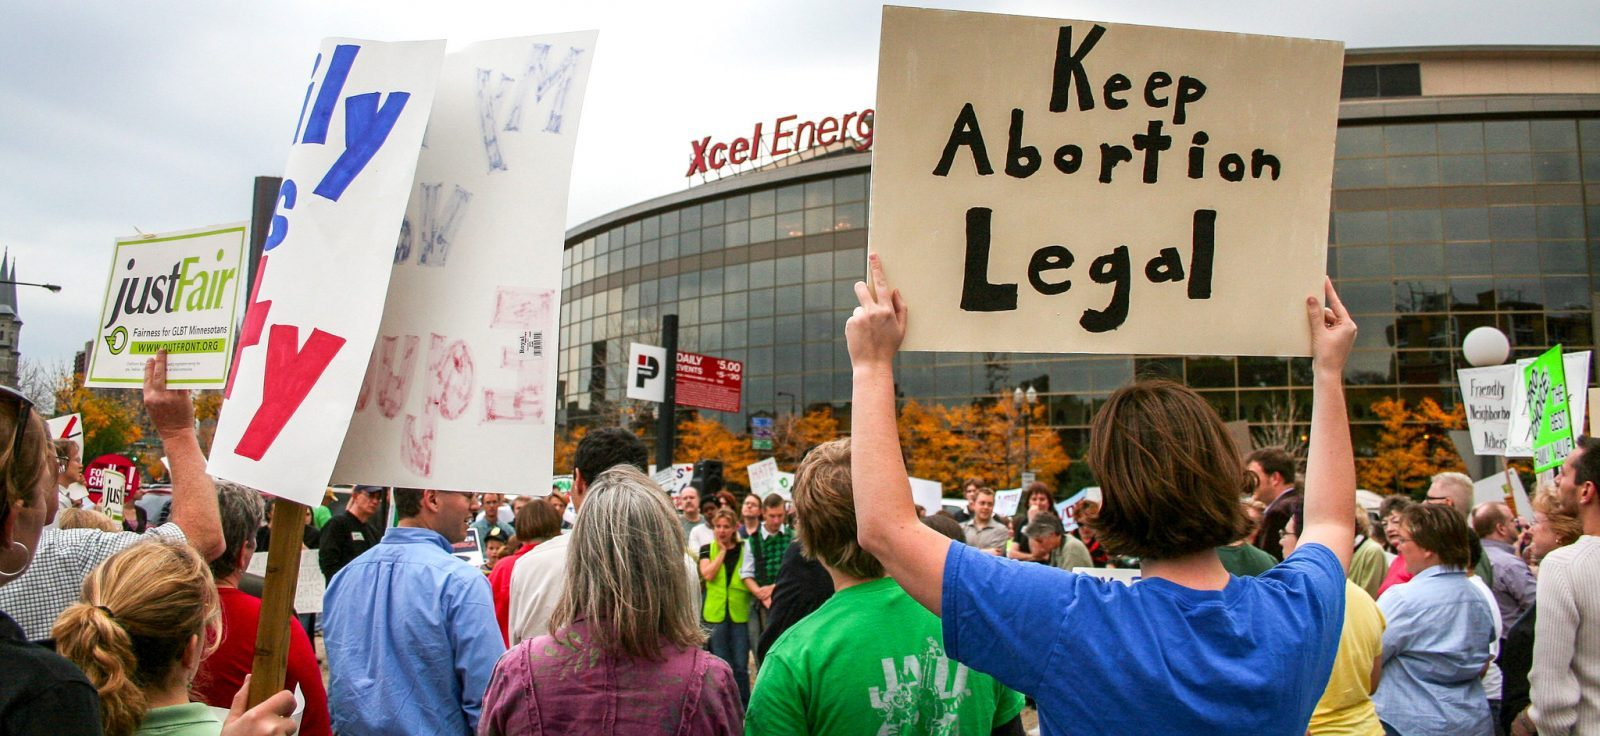 Keep abortion legal abortion right's protest